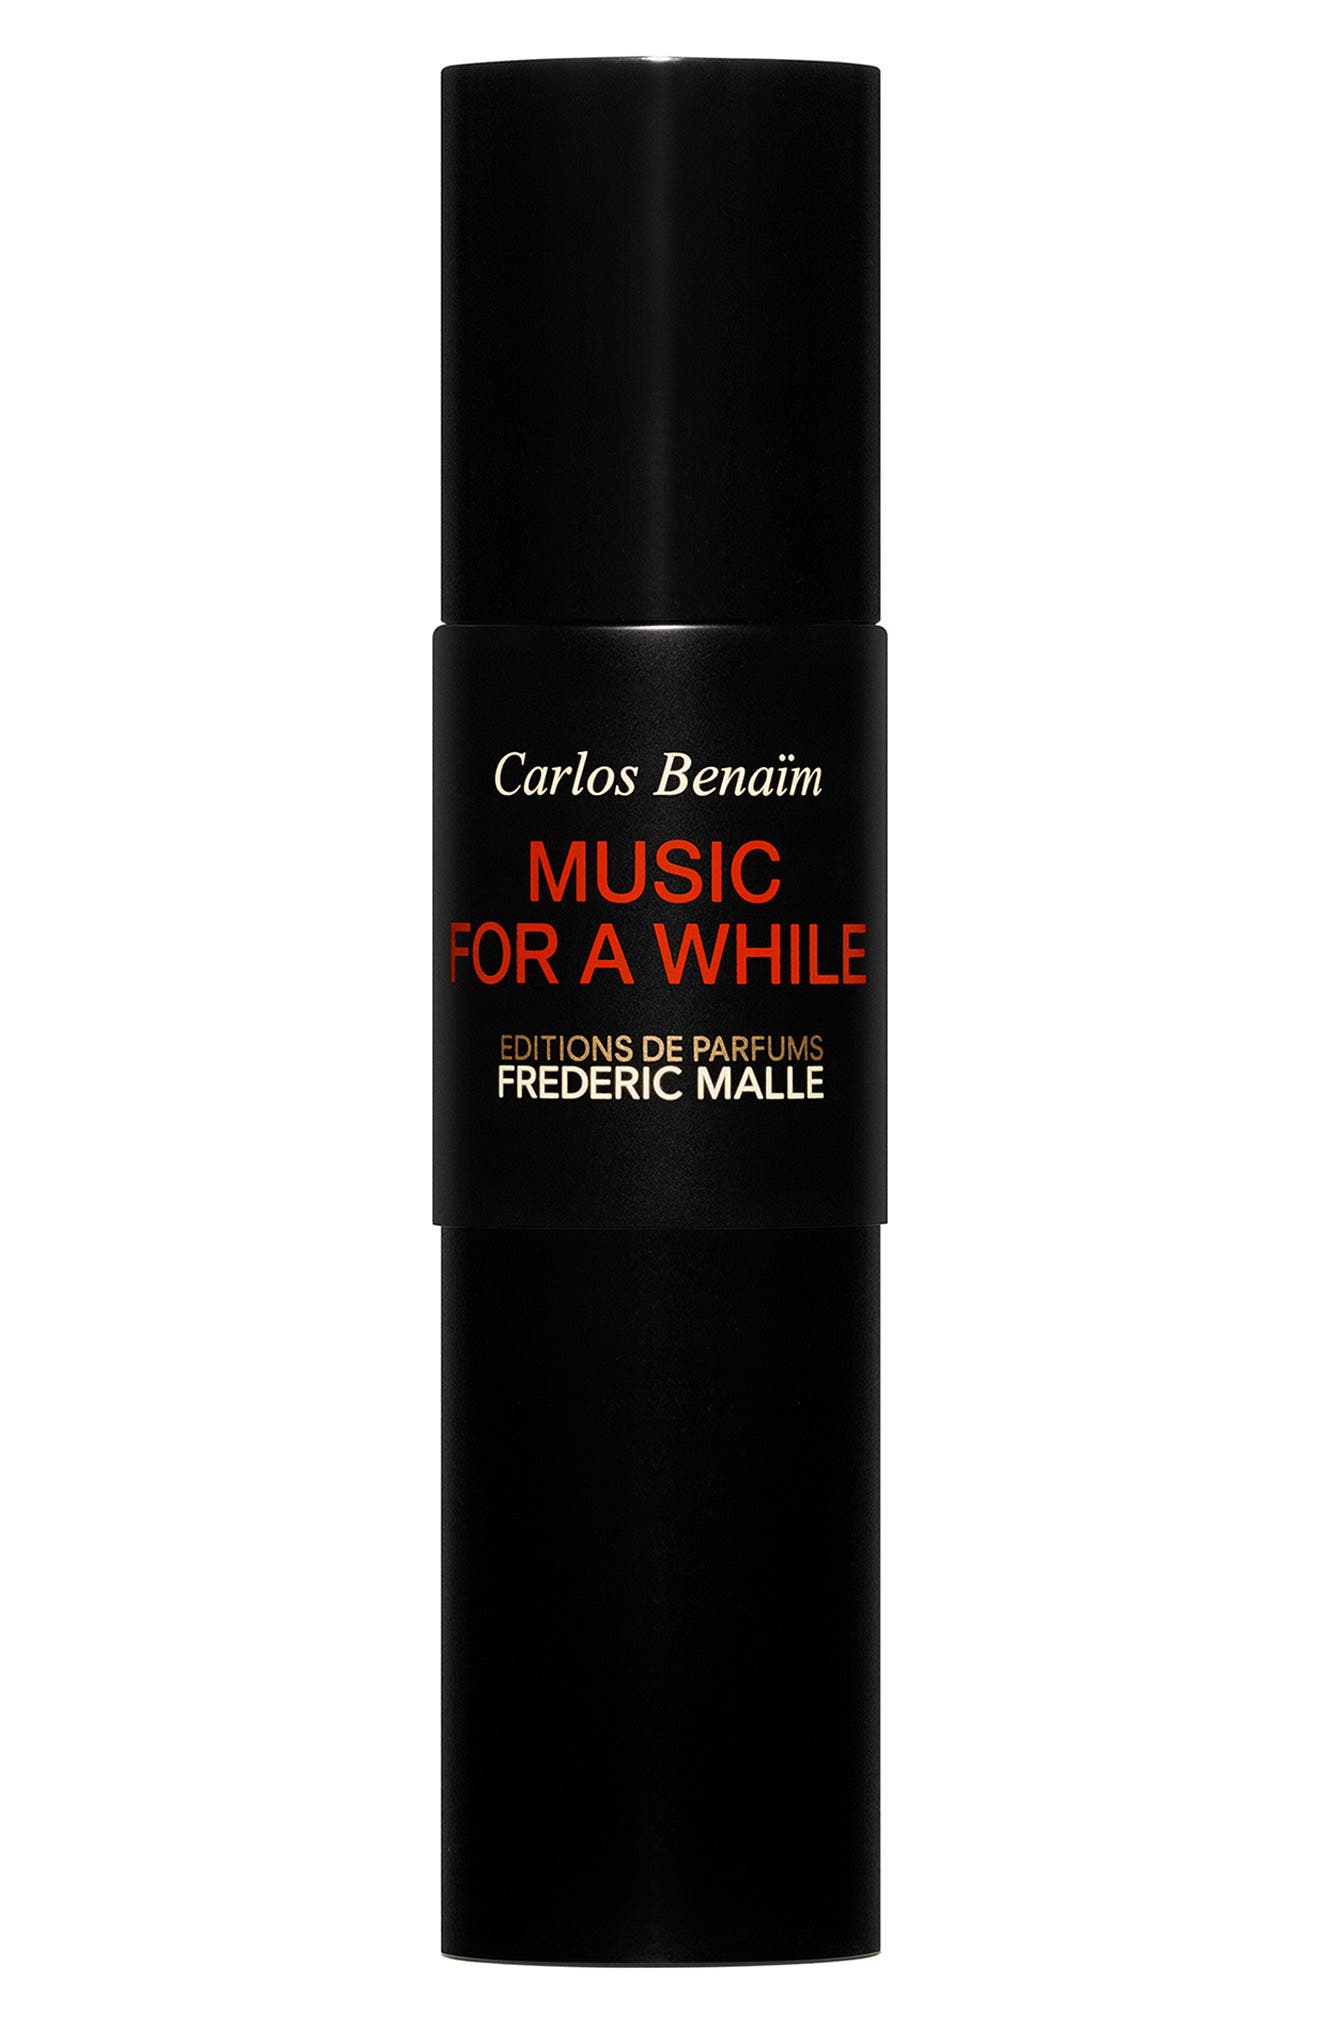 Music For A While Travel Parfum Spray